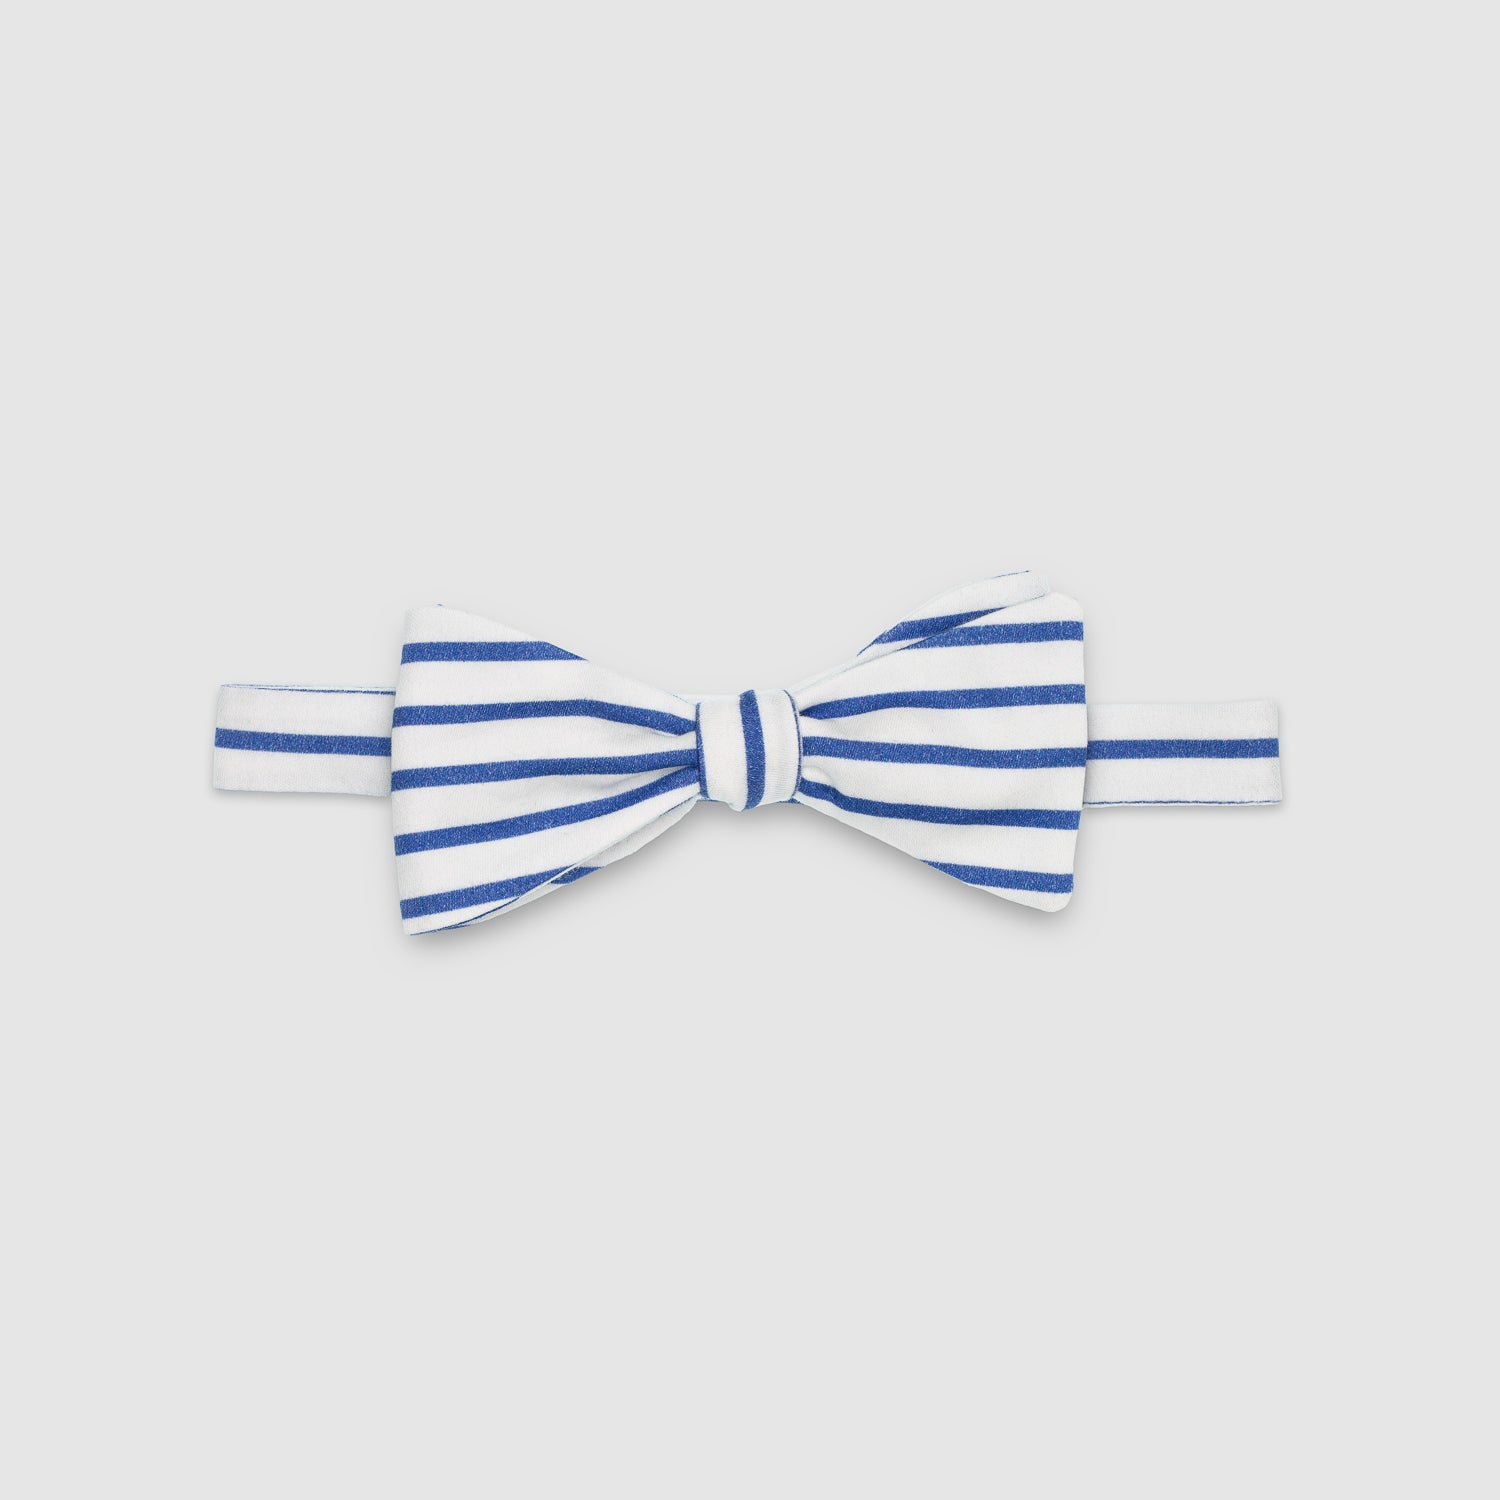 Image of CALIMERO – the bow tie